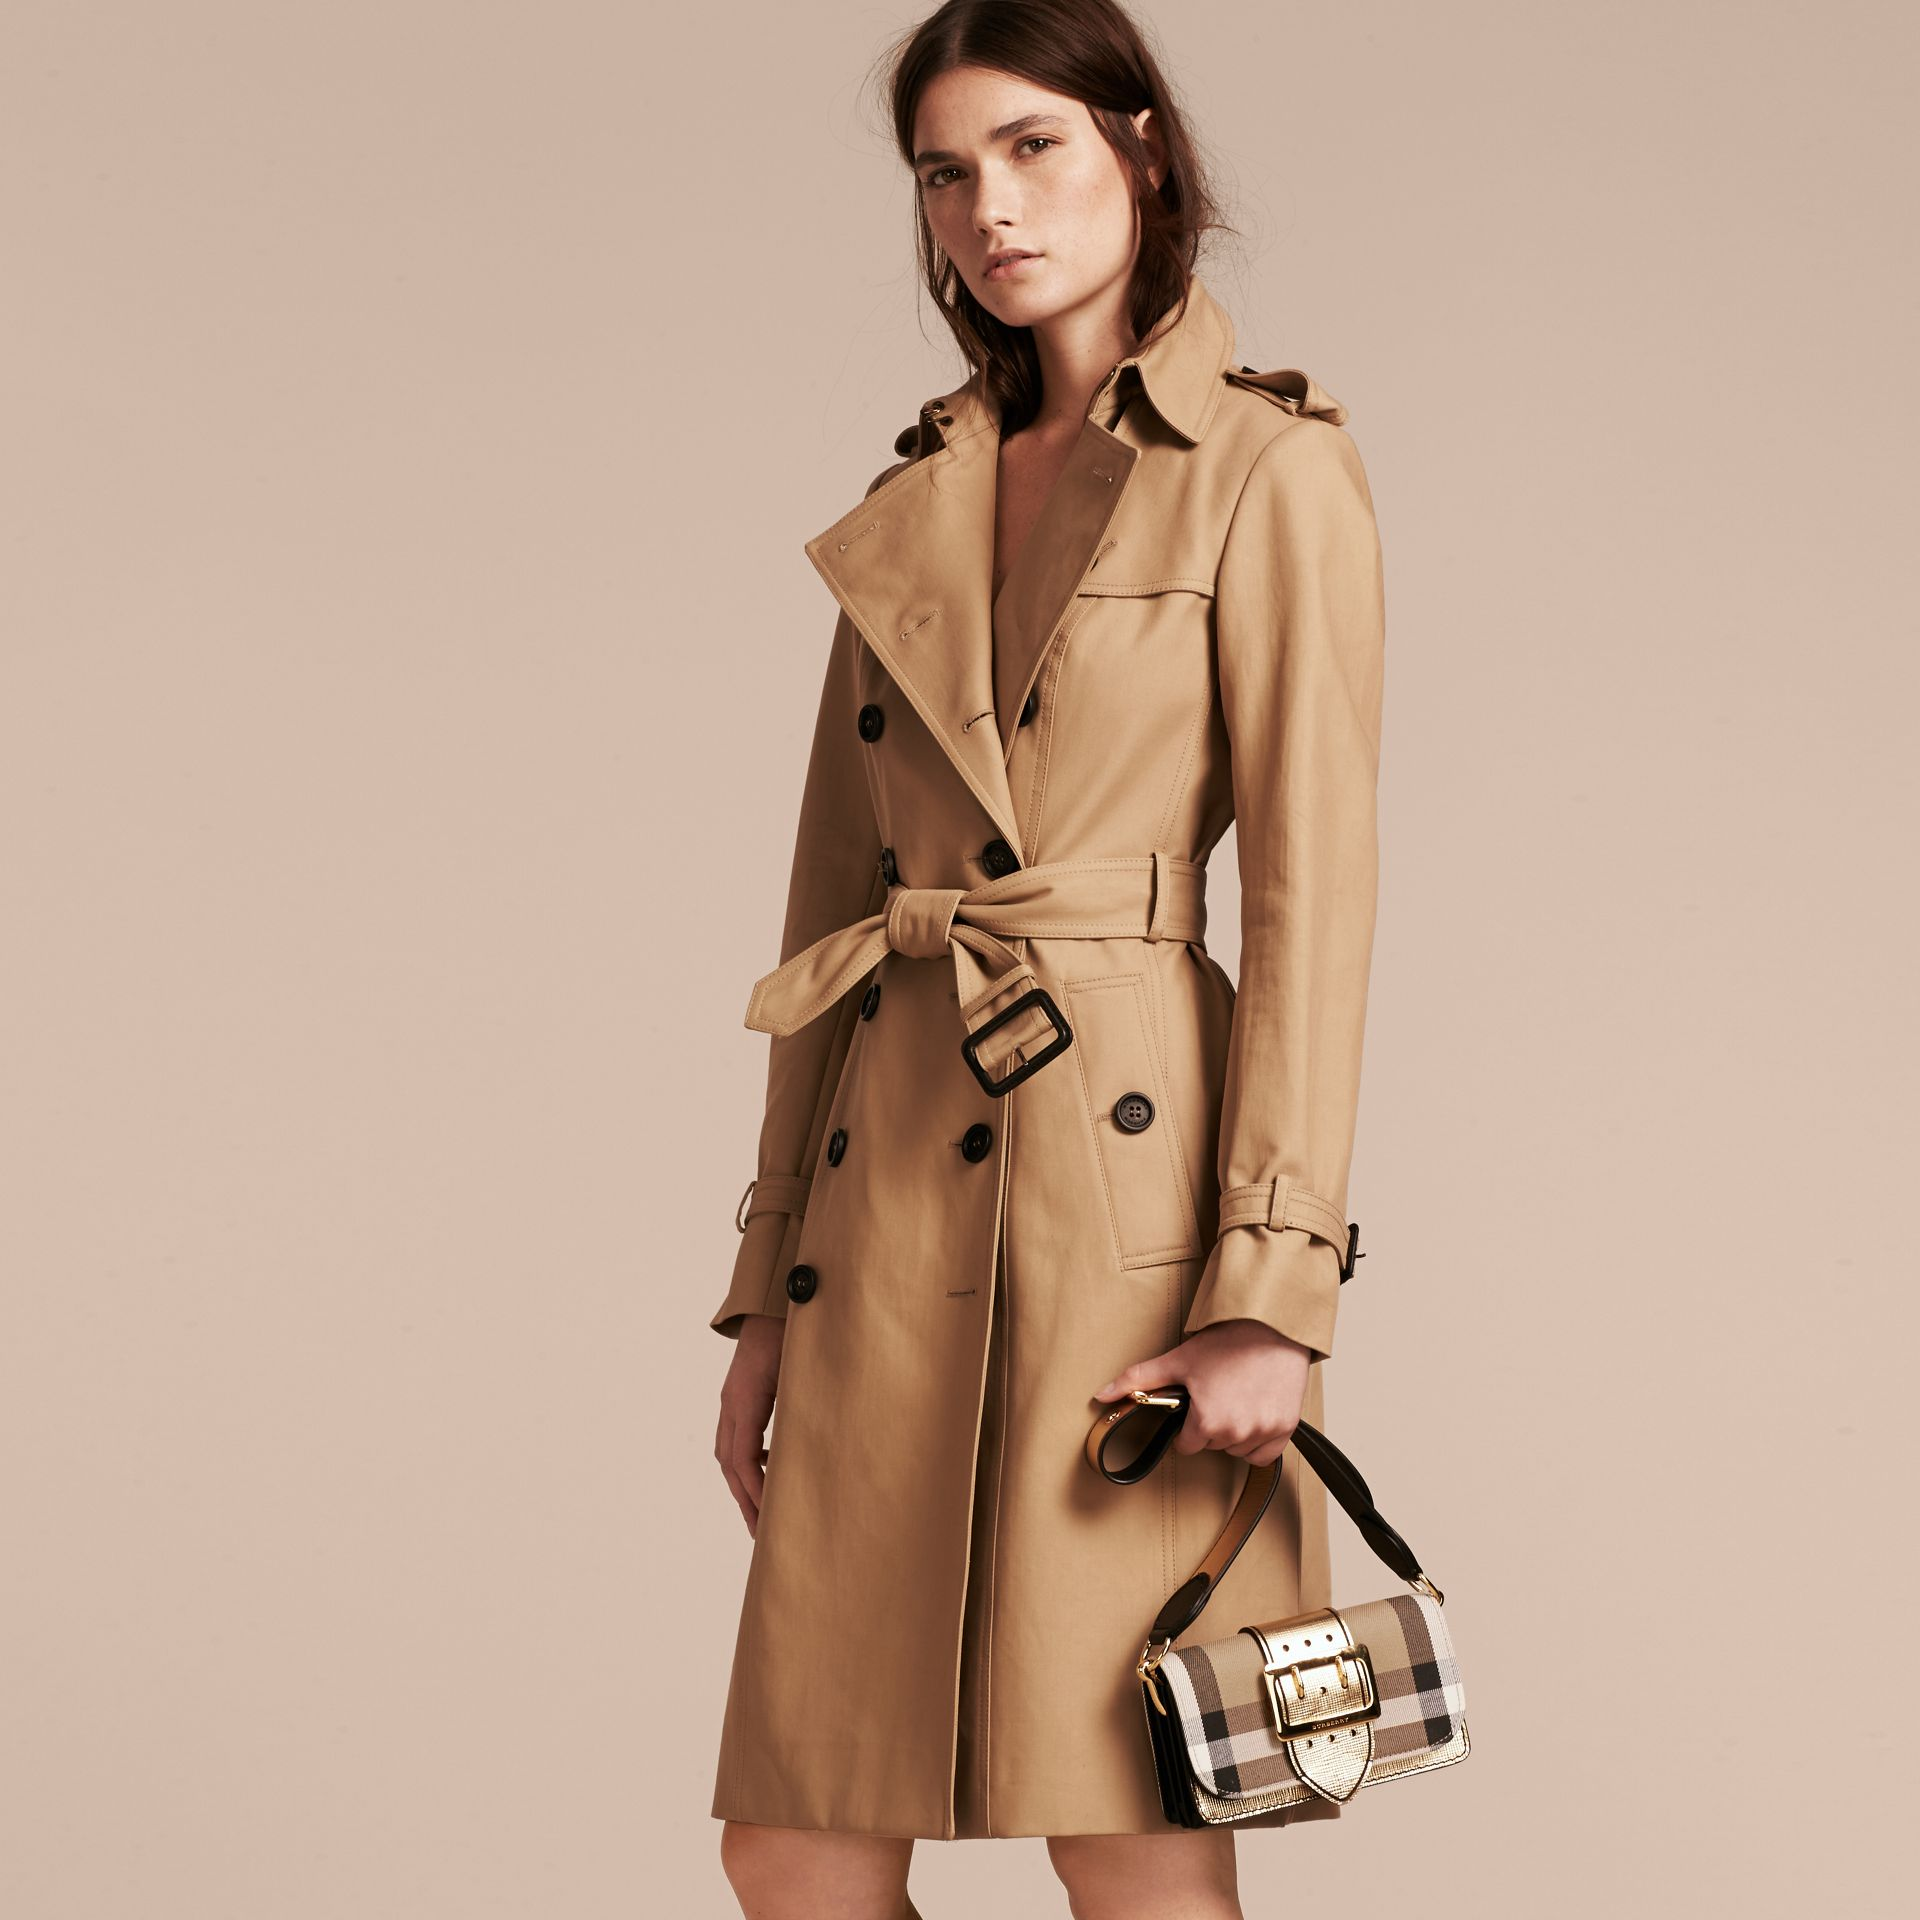 The Small Buckle Bag in House Check and Leather in Gold - Women | Burberry Australia - gallery image 8